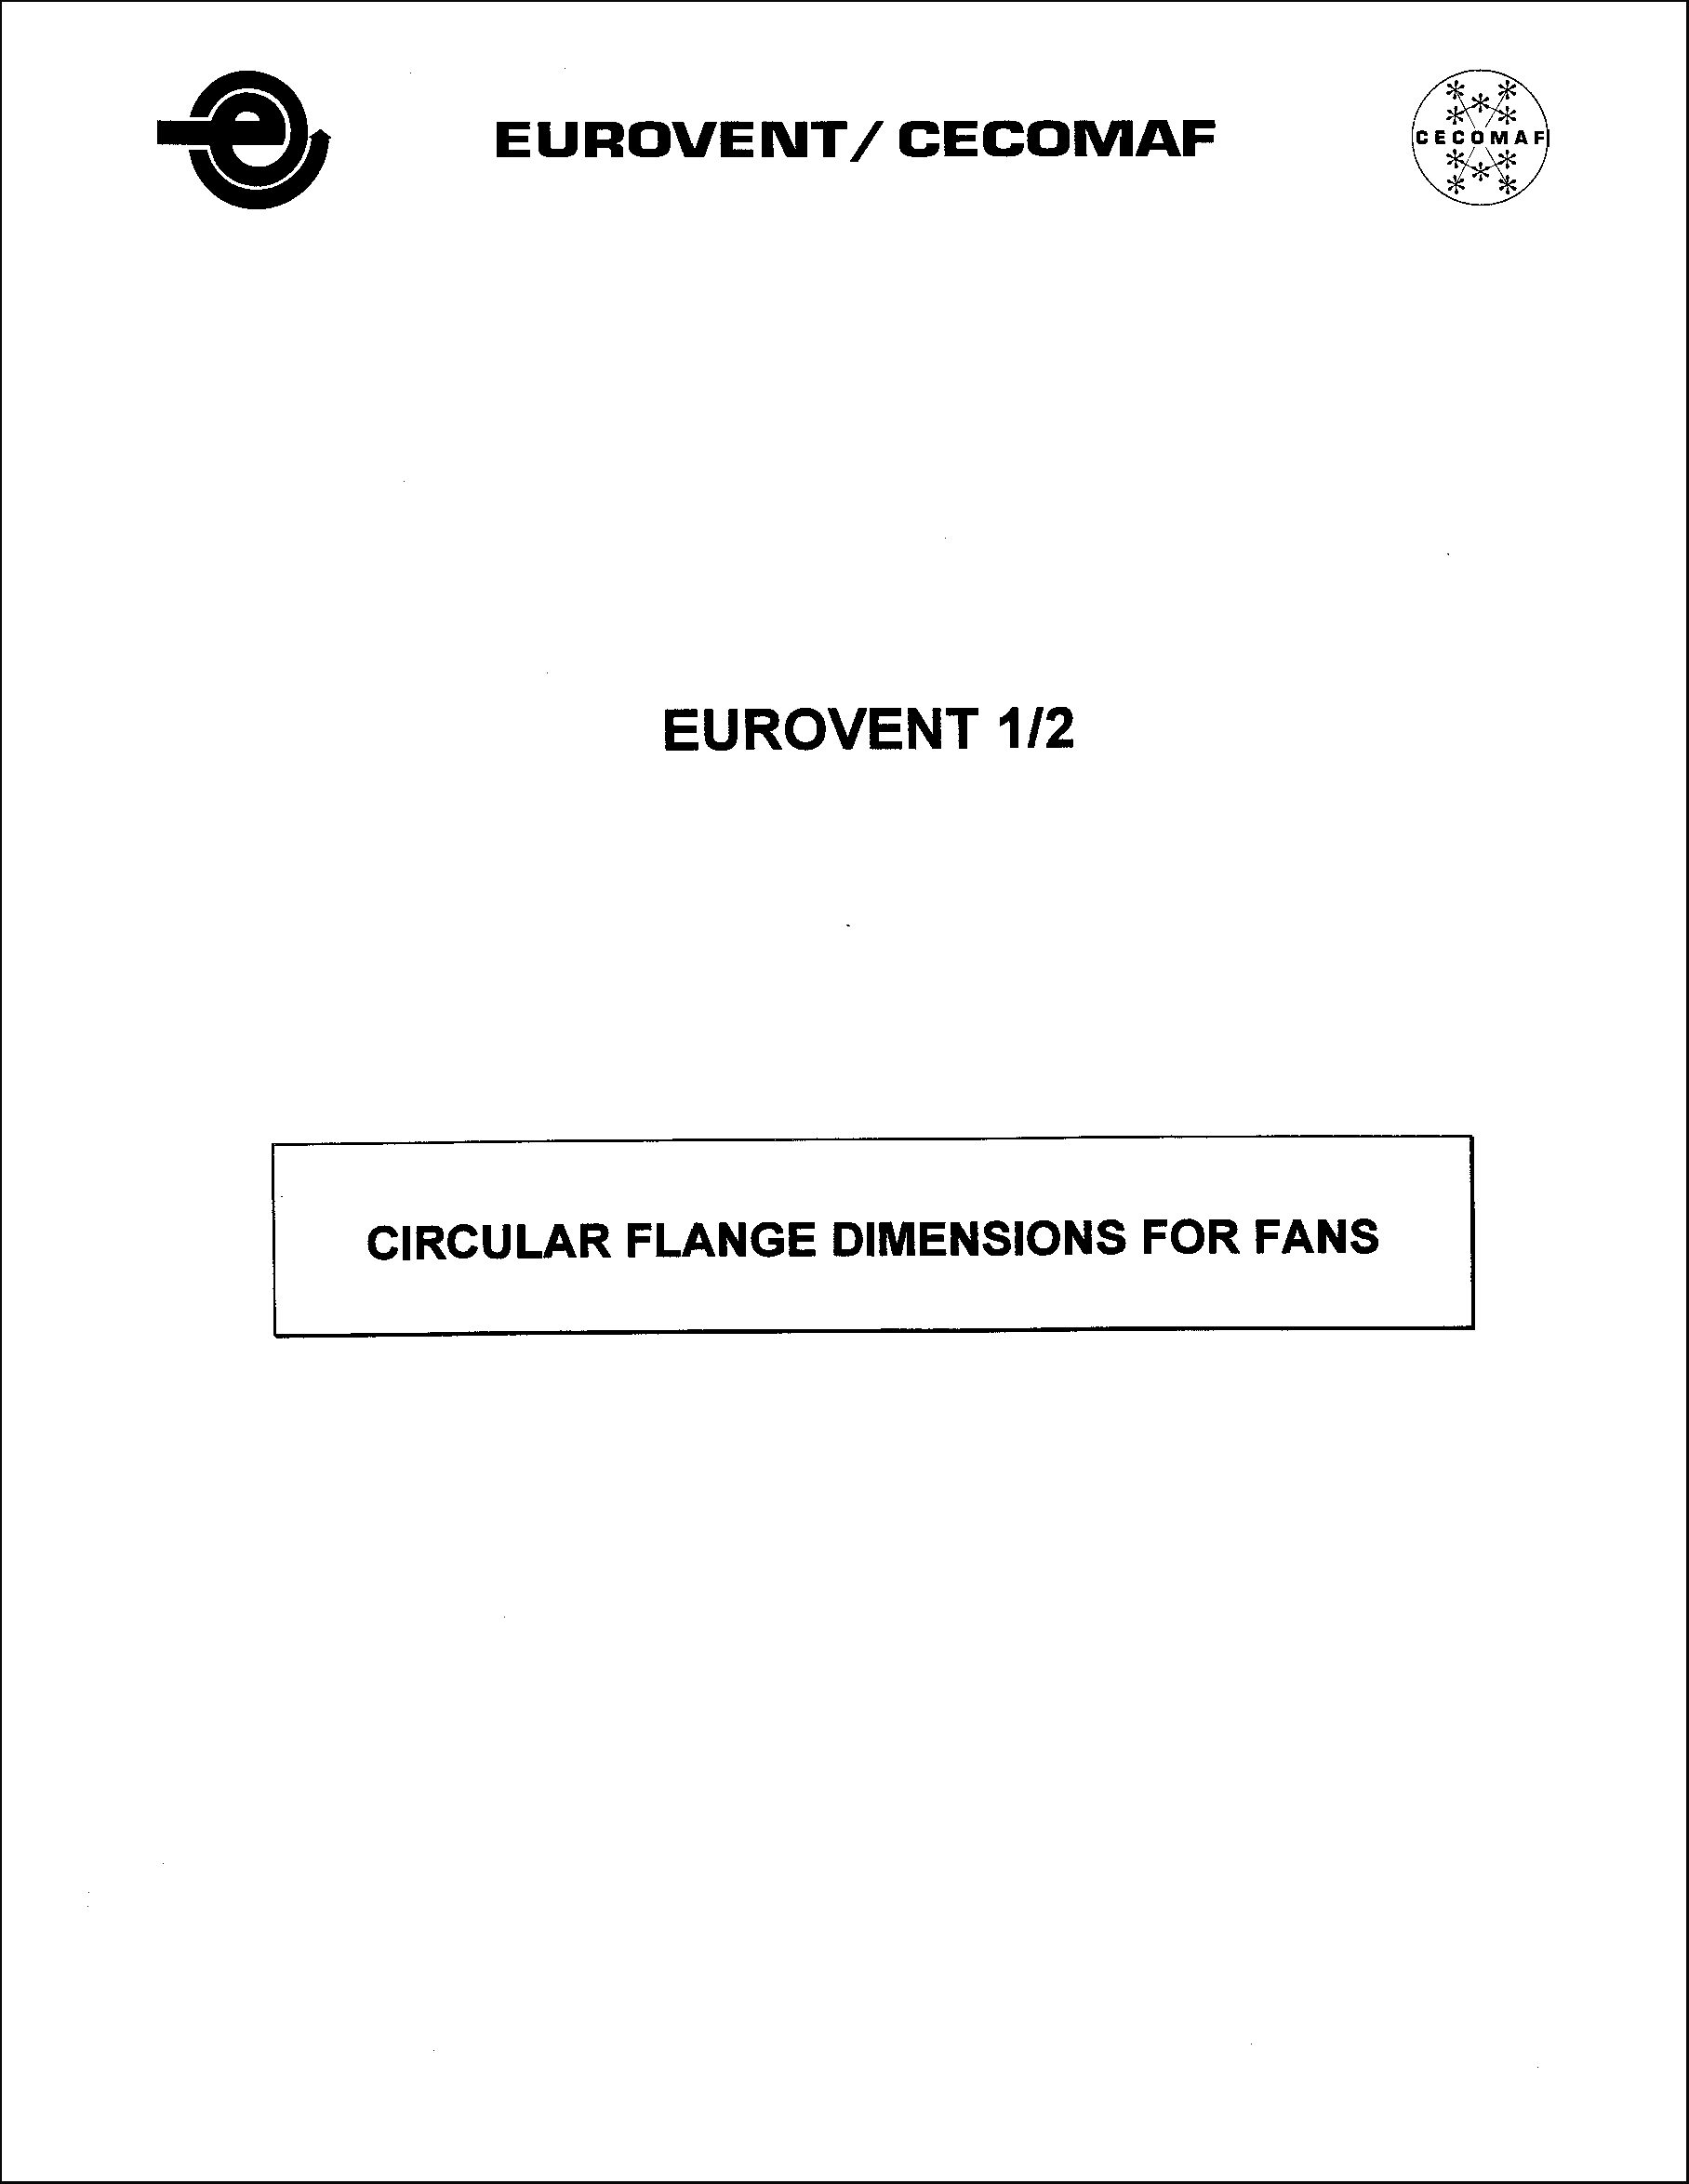 1985 - Circular flange dimensions for fans